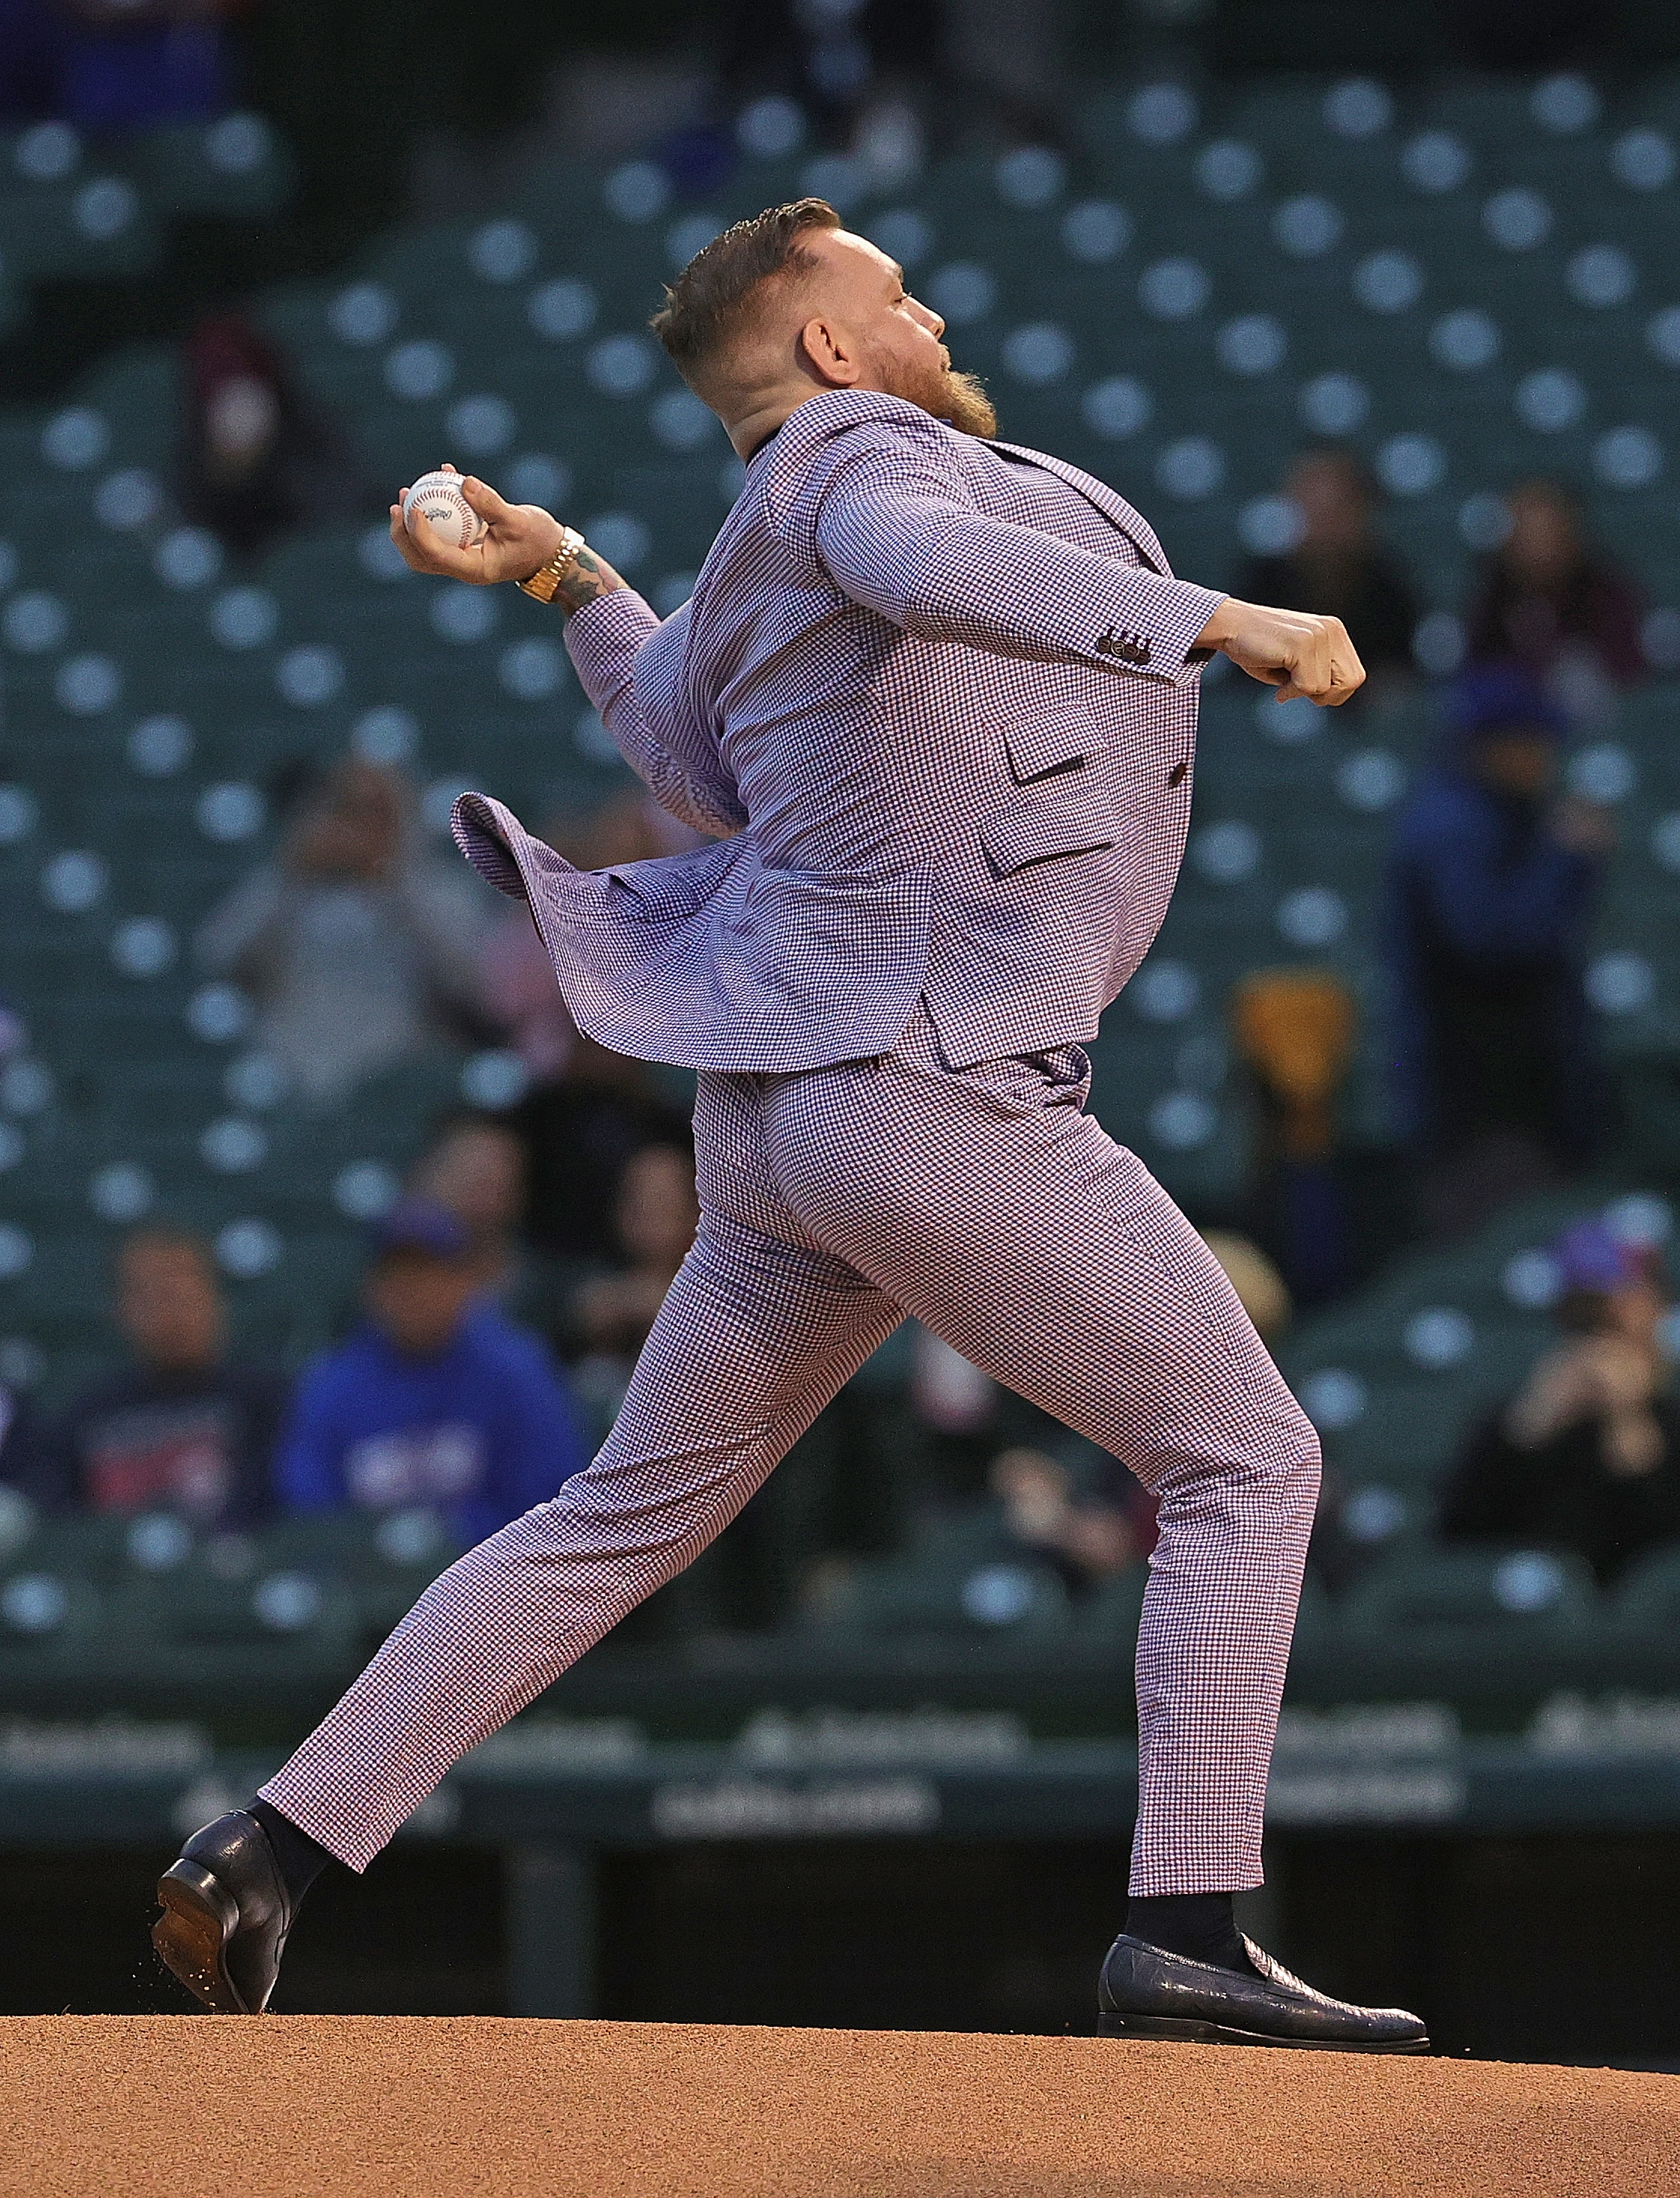 Conor McGregor throws out the ceremonial first pitch at the Cubs-Twins game on Tuesday.